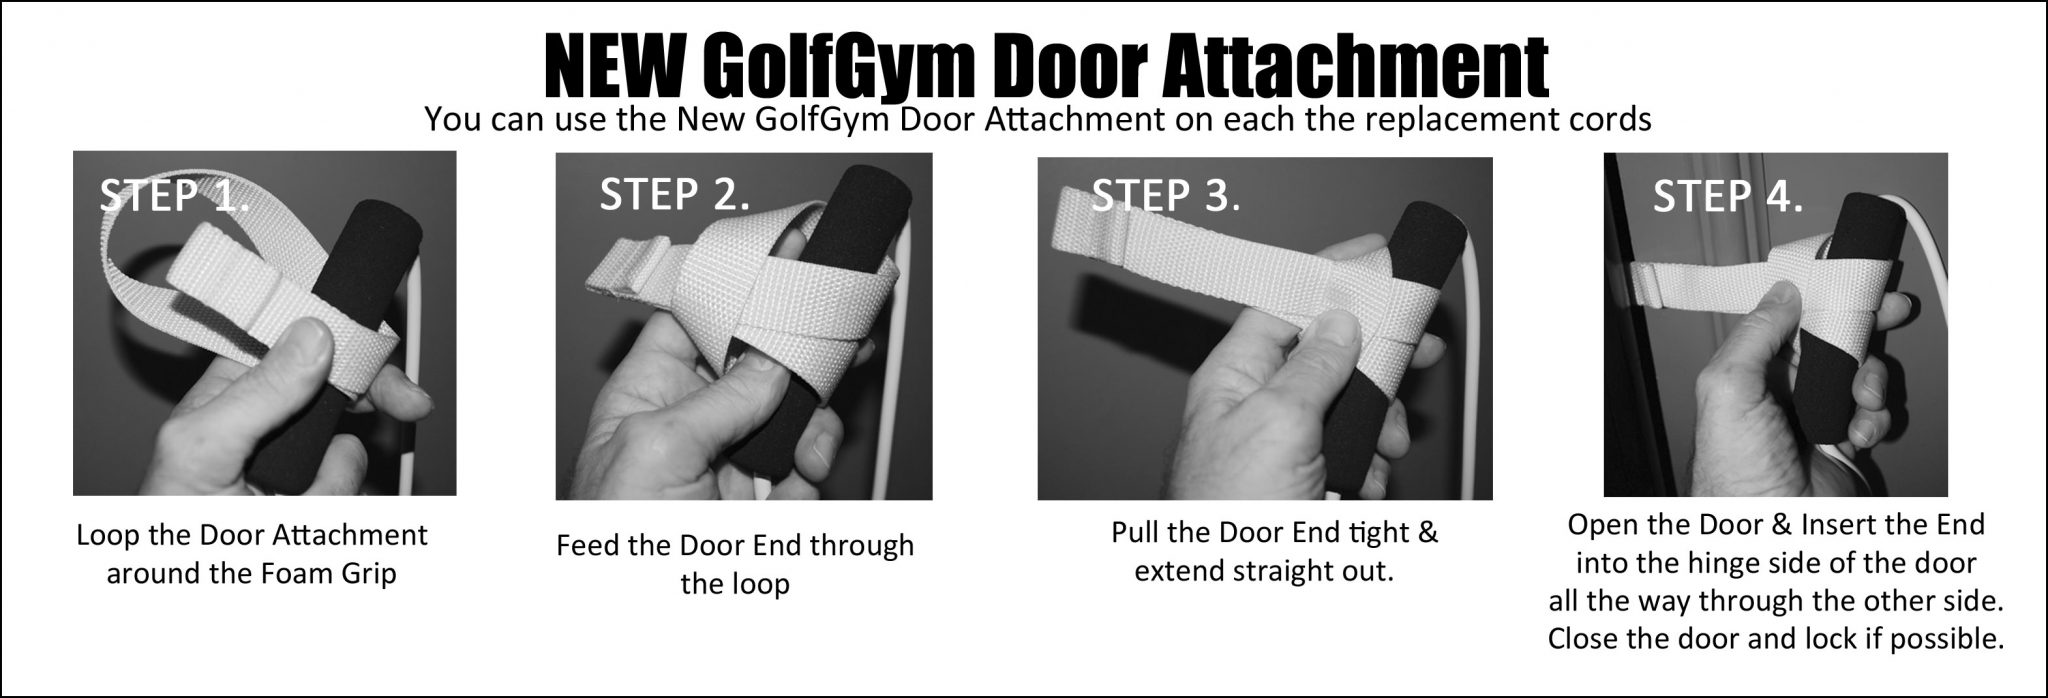 GolfGym,Loop Door Attachment,Door Attachment